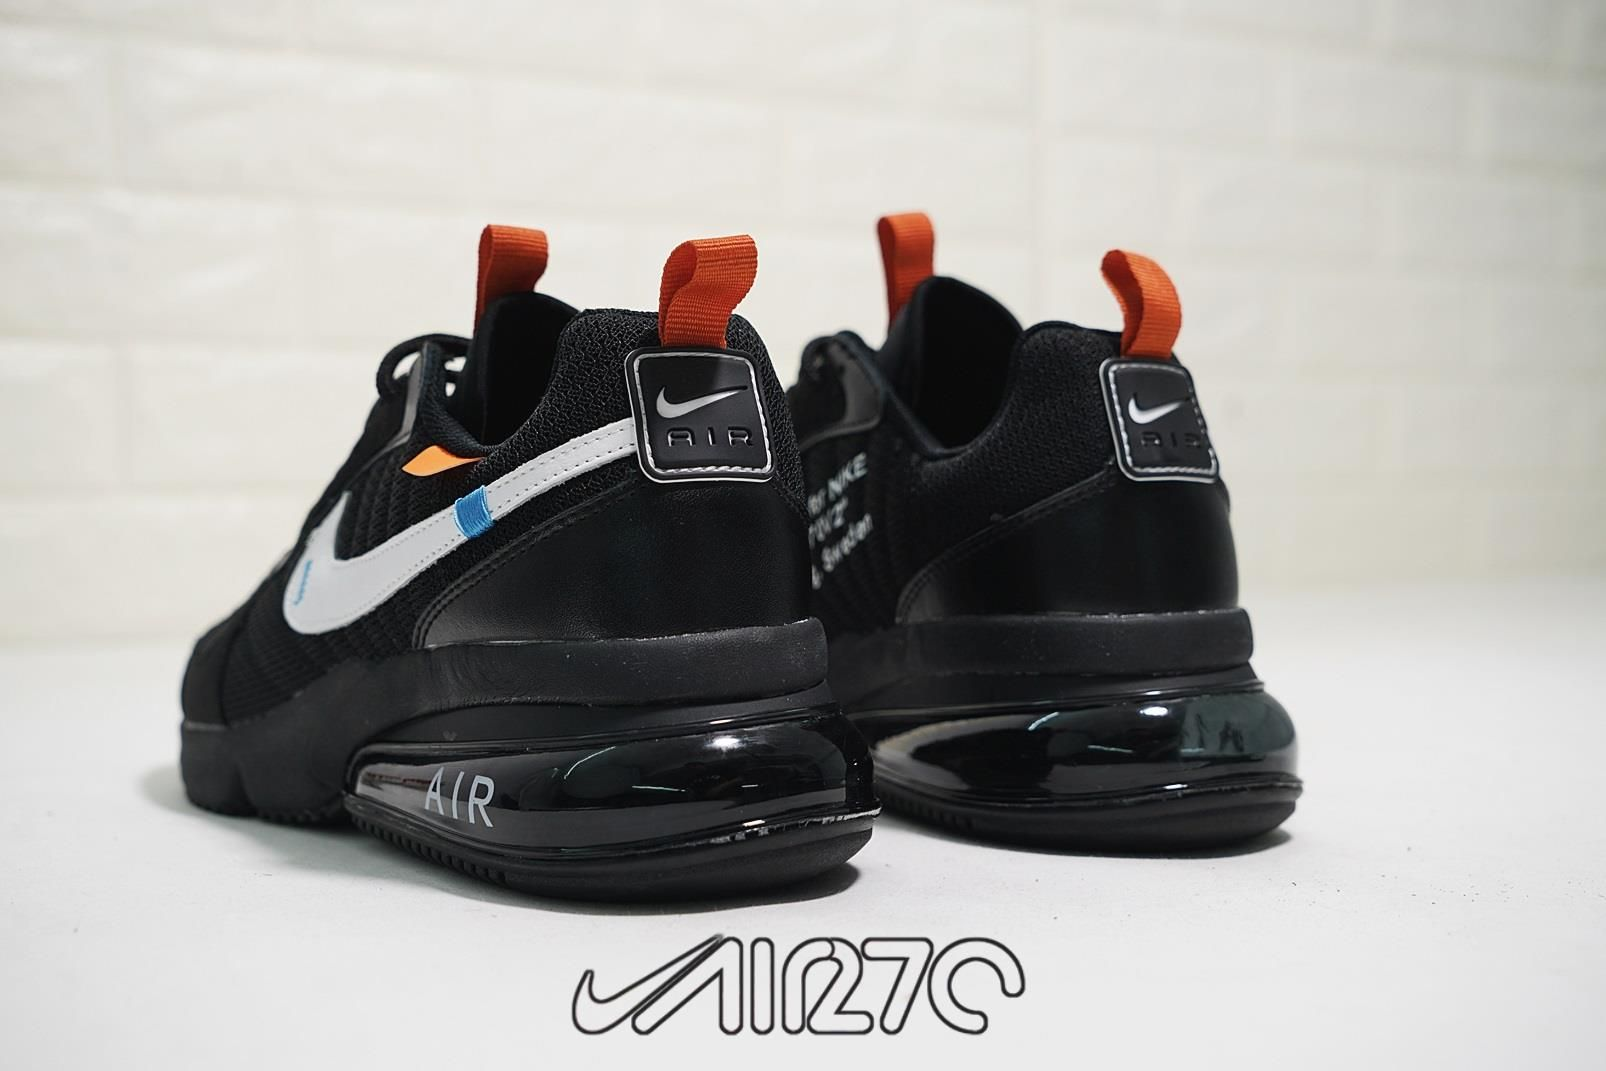 74a06adca8cf Off-White x Nike Air Max 270 Futura Black-White Orange 2018